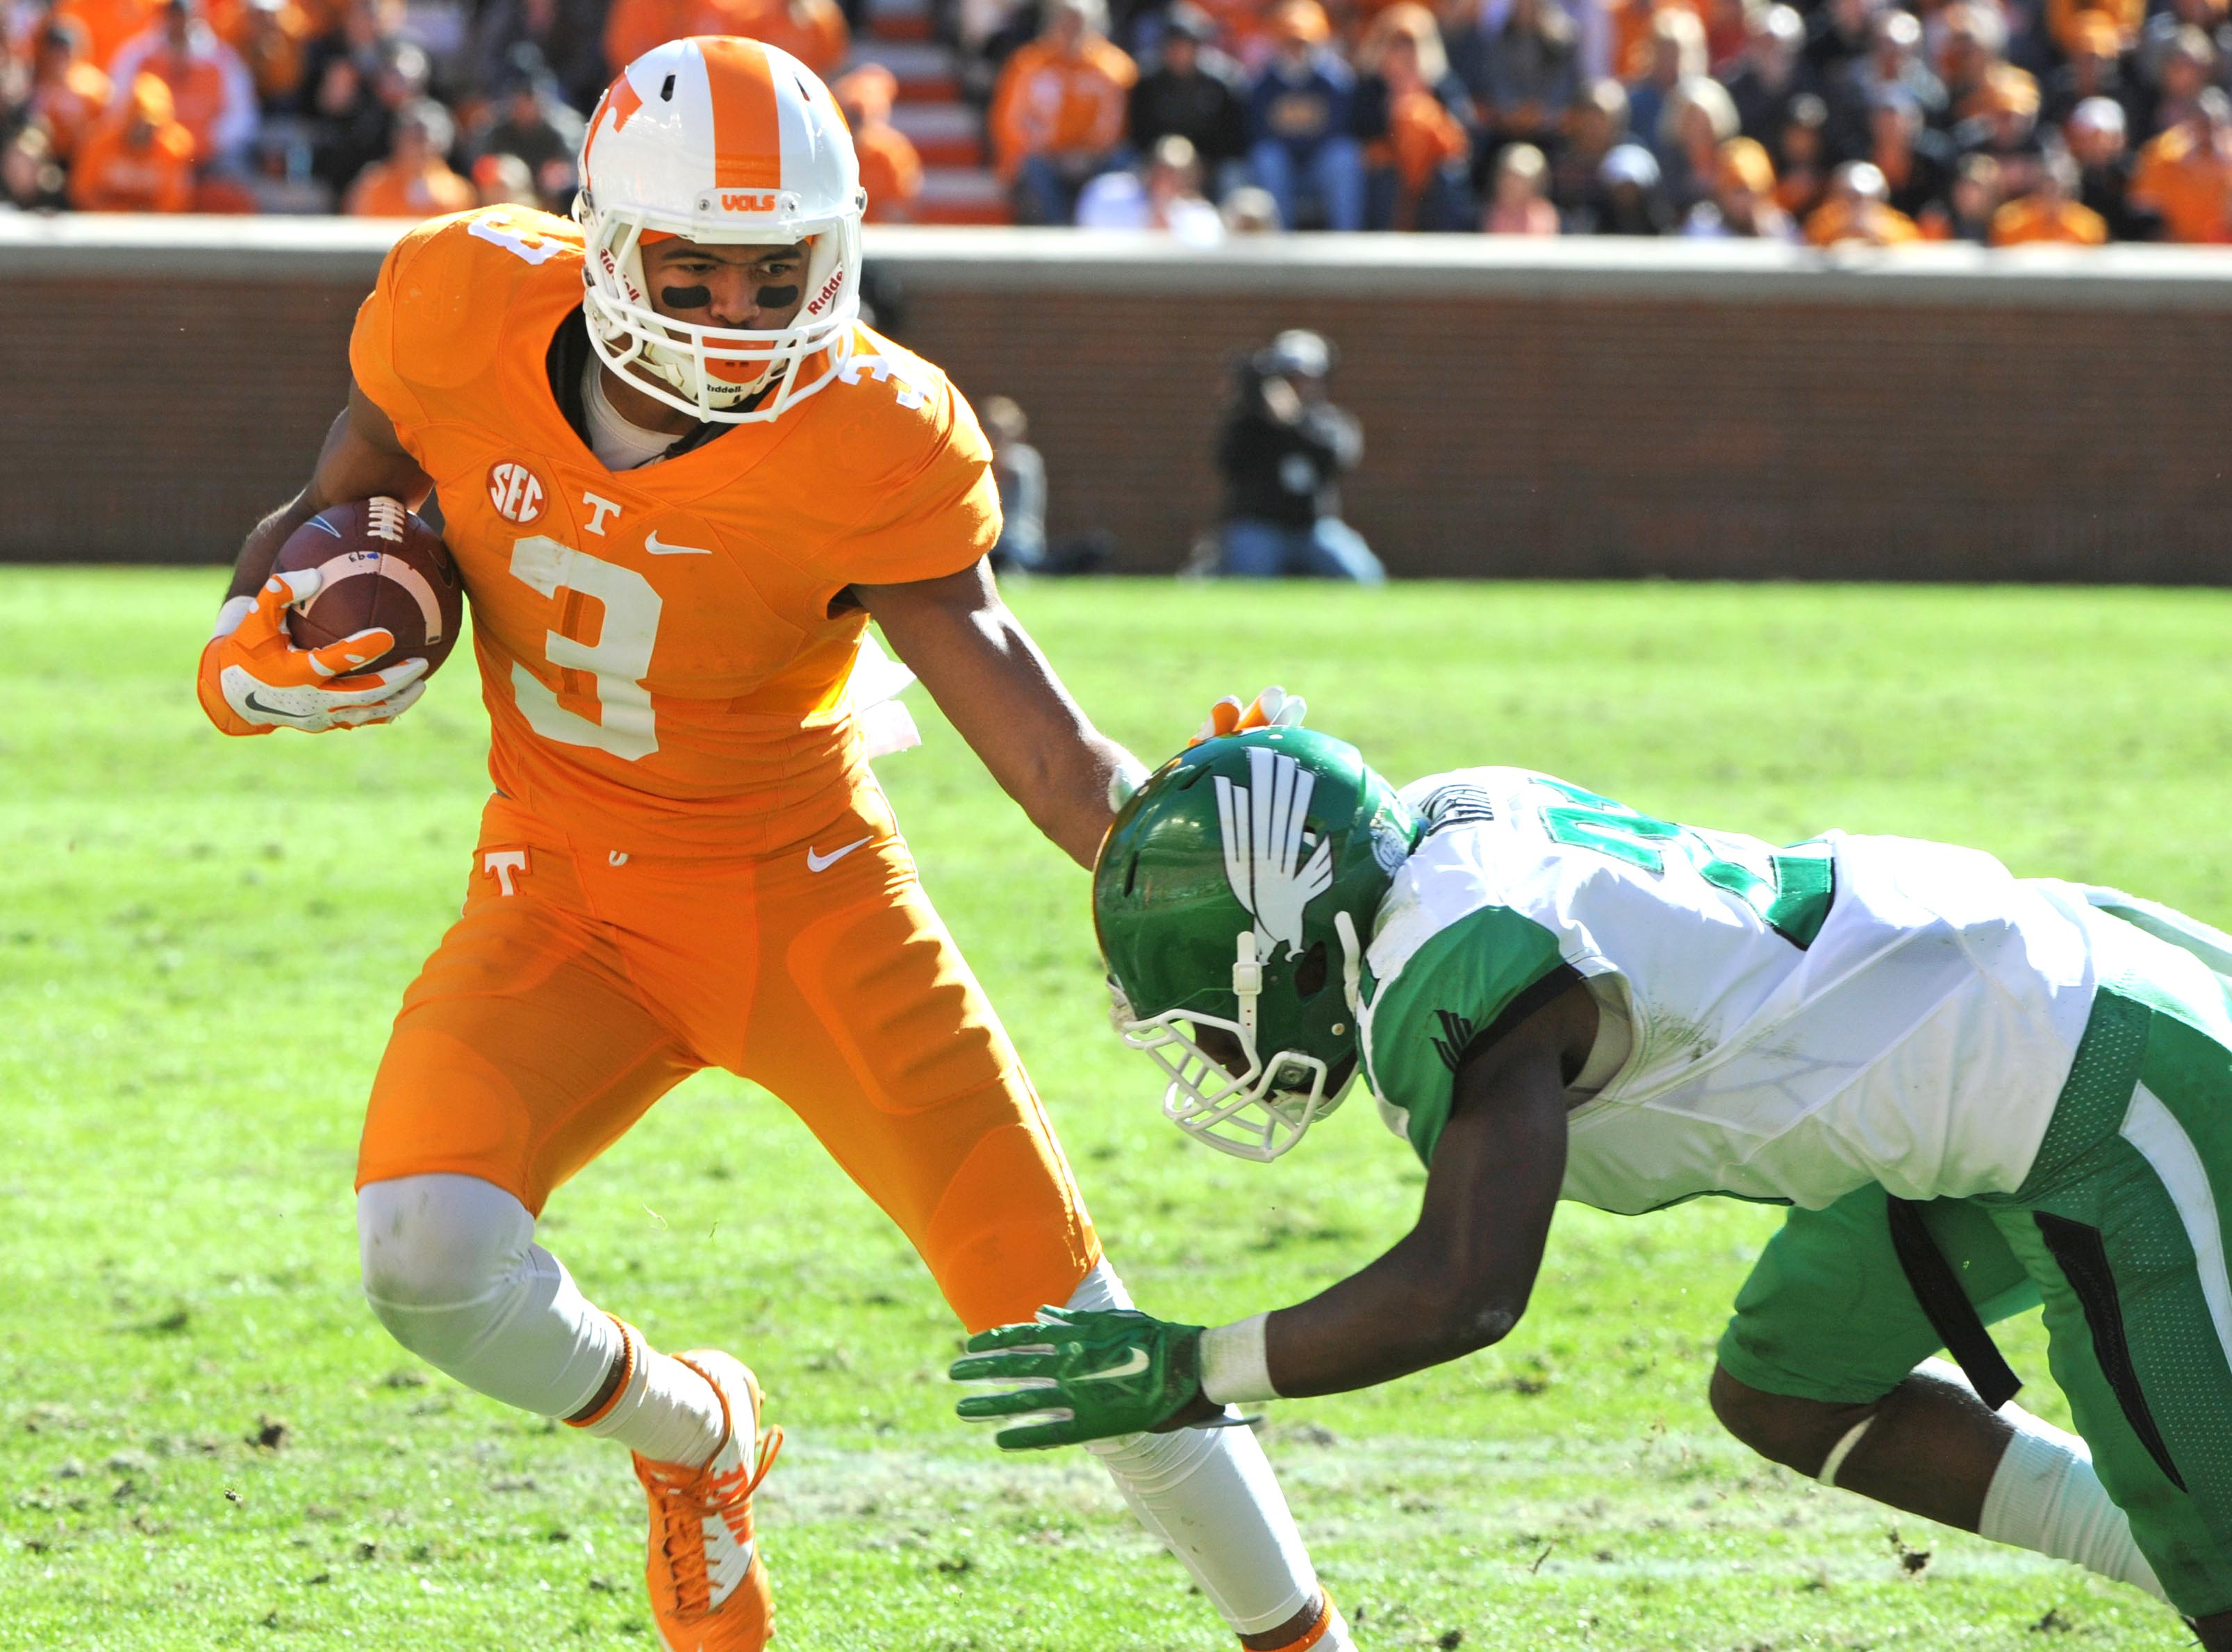 Tennessee wide receiver Josh Malone (3) stiff arms North Texas defensive back James Gray (21) during the first half of an NCAA college football game at Neyland Stadium in Knoxville, Tenn. on Saturday, Nov. 14, 2015. (Michael Patrick/Knoxville News Sentine